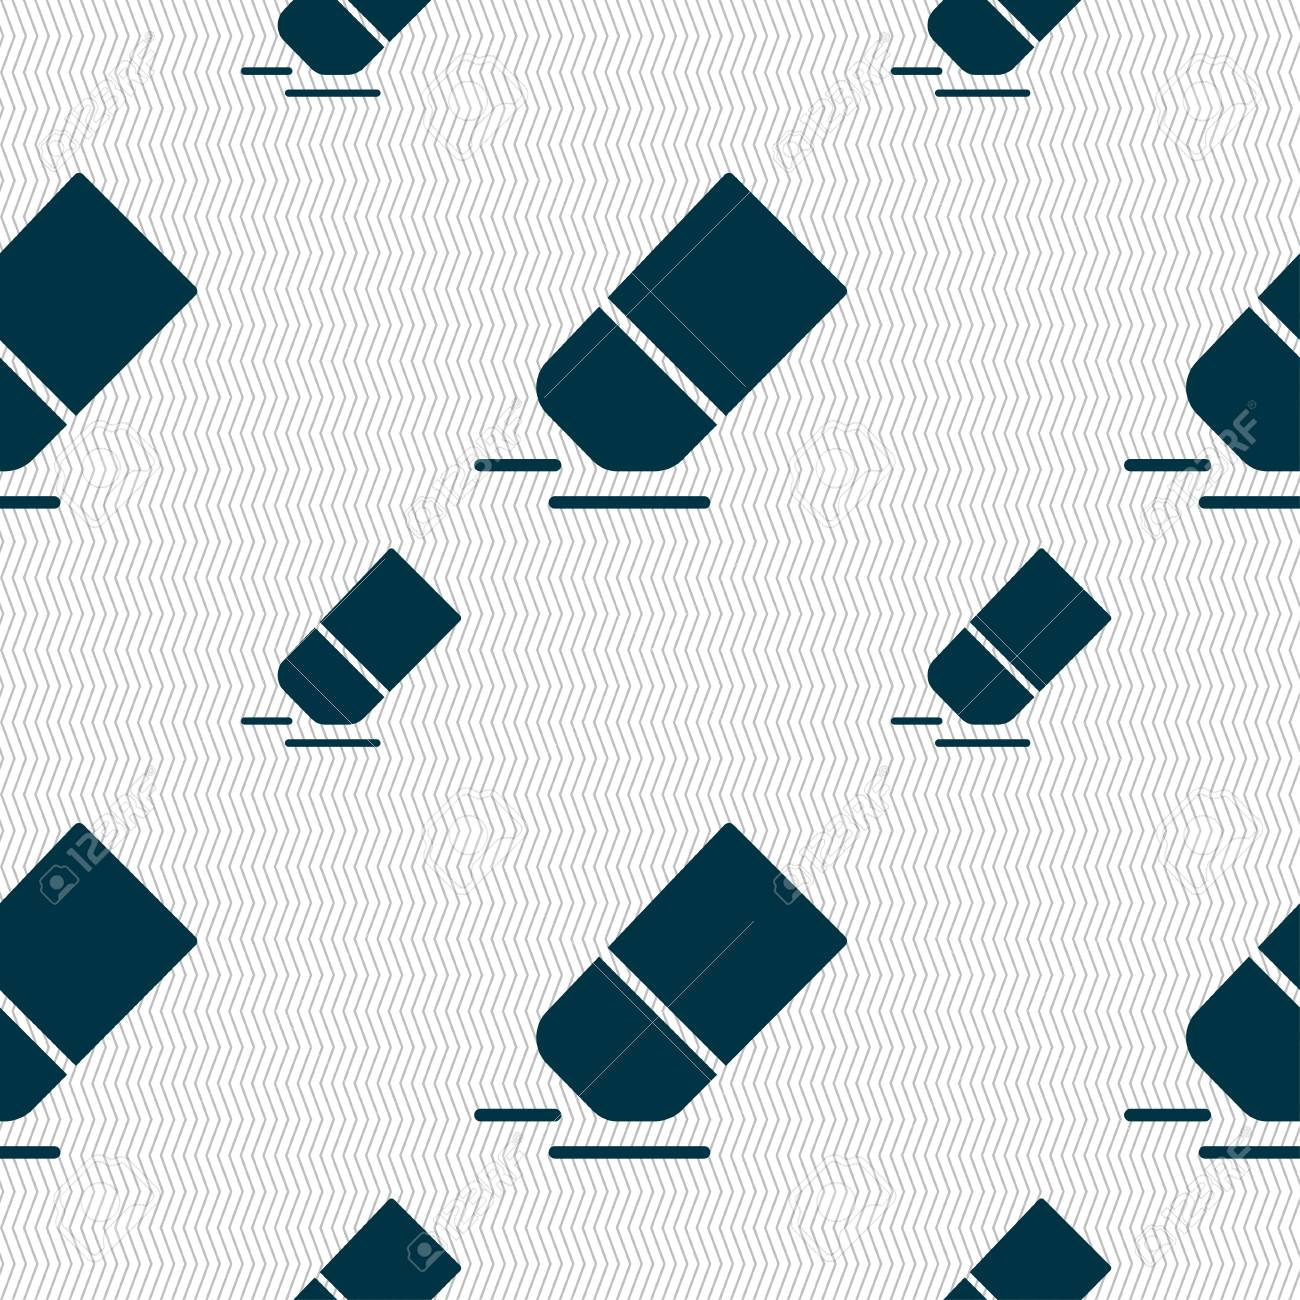 eraser rubber icon sign seamless pattern with geometric texture